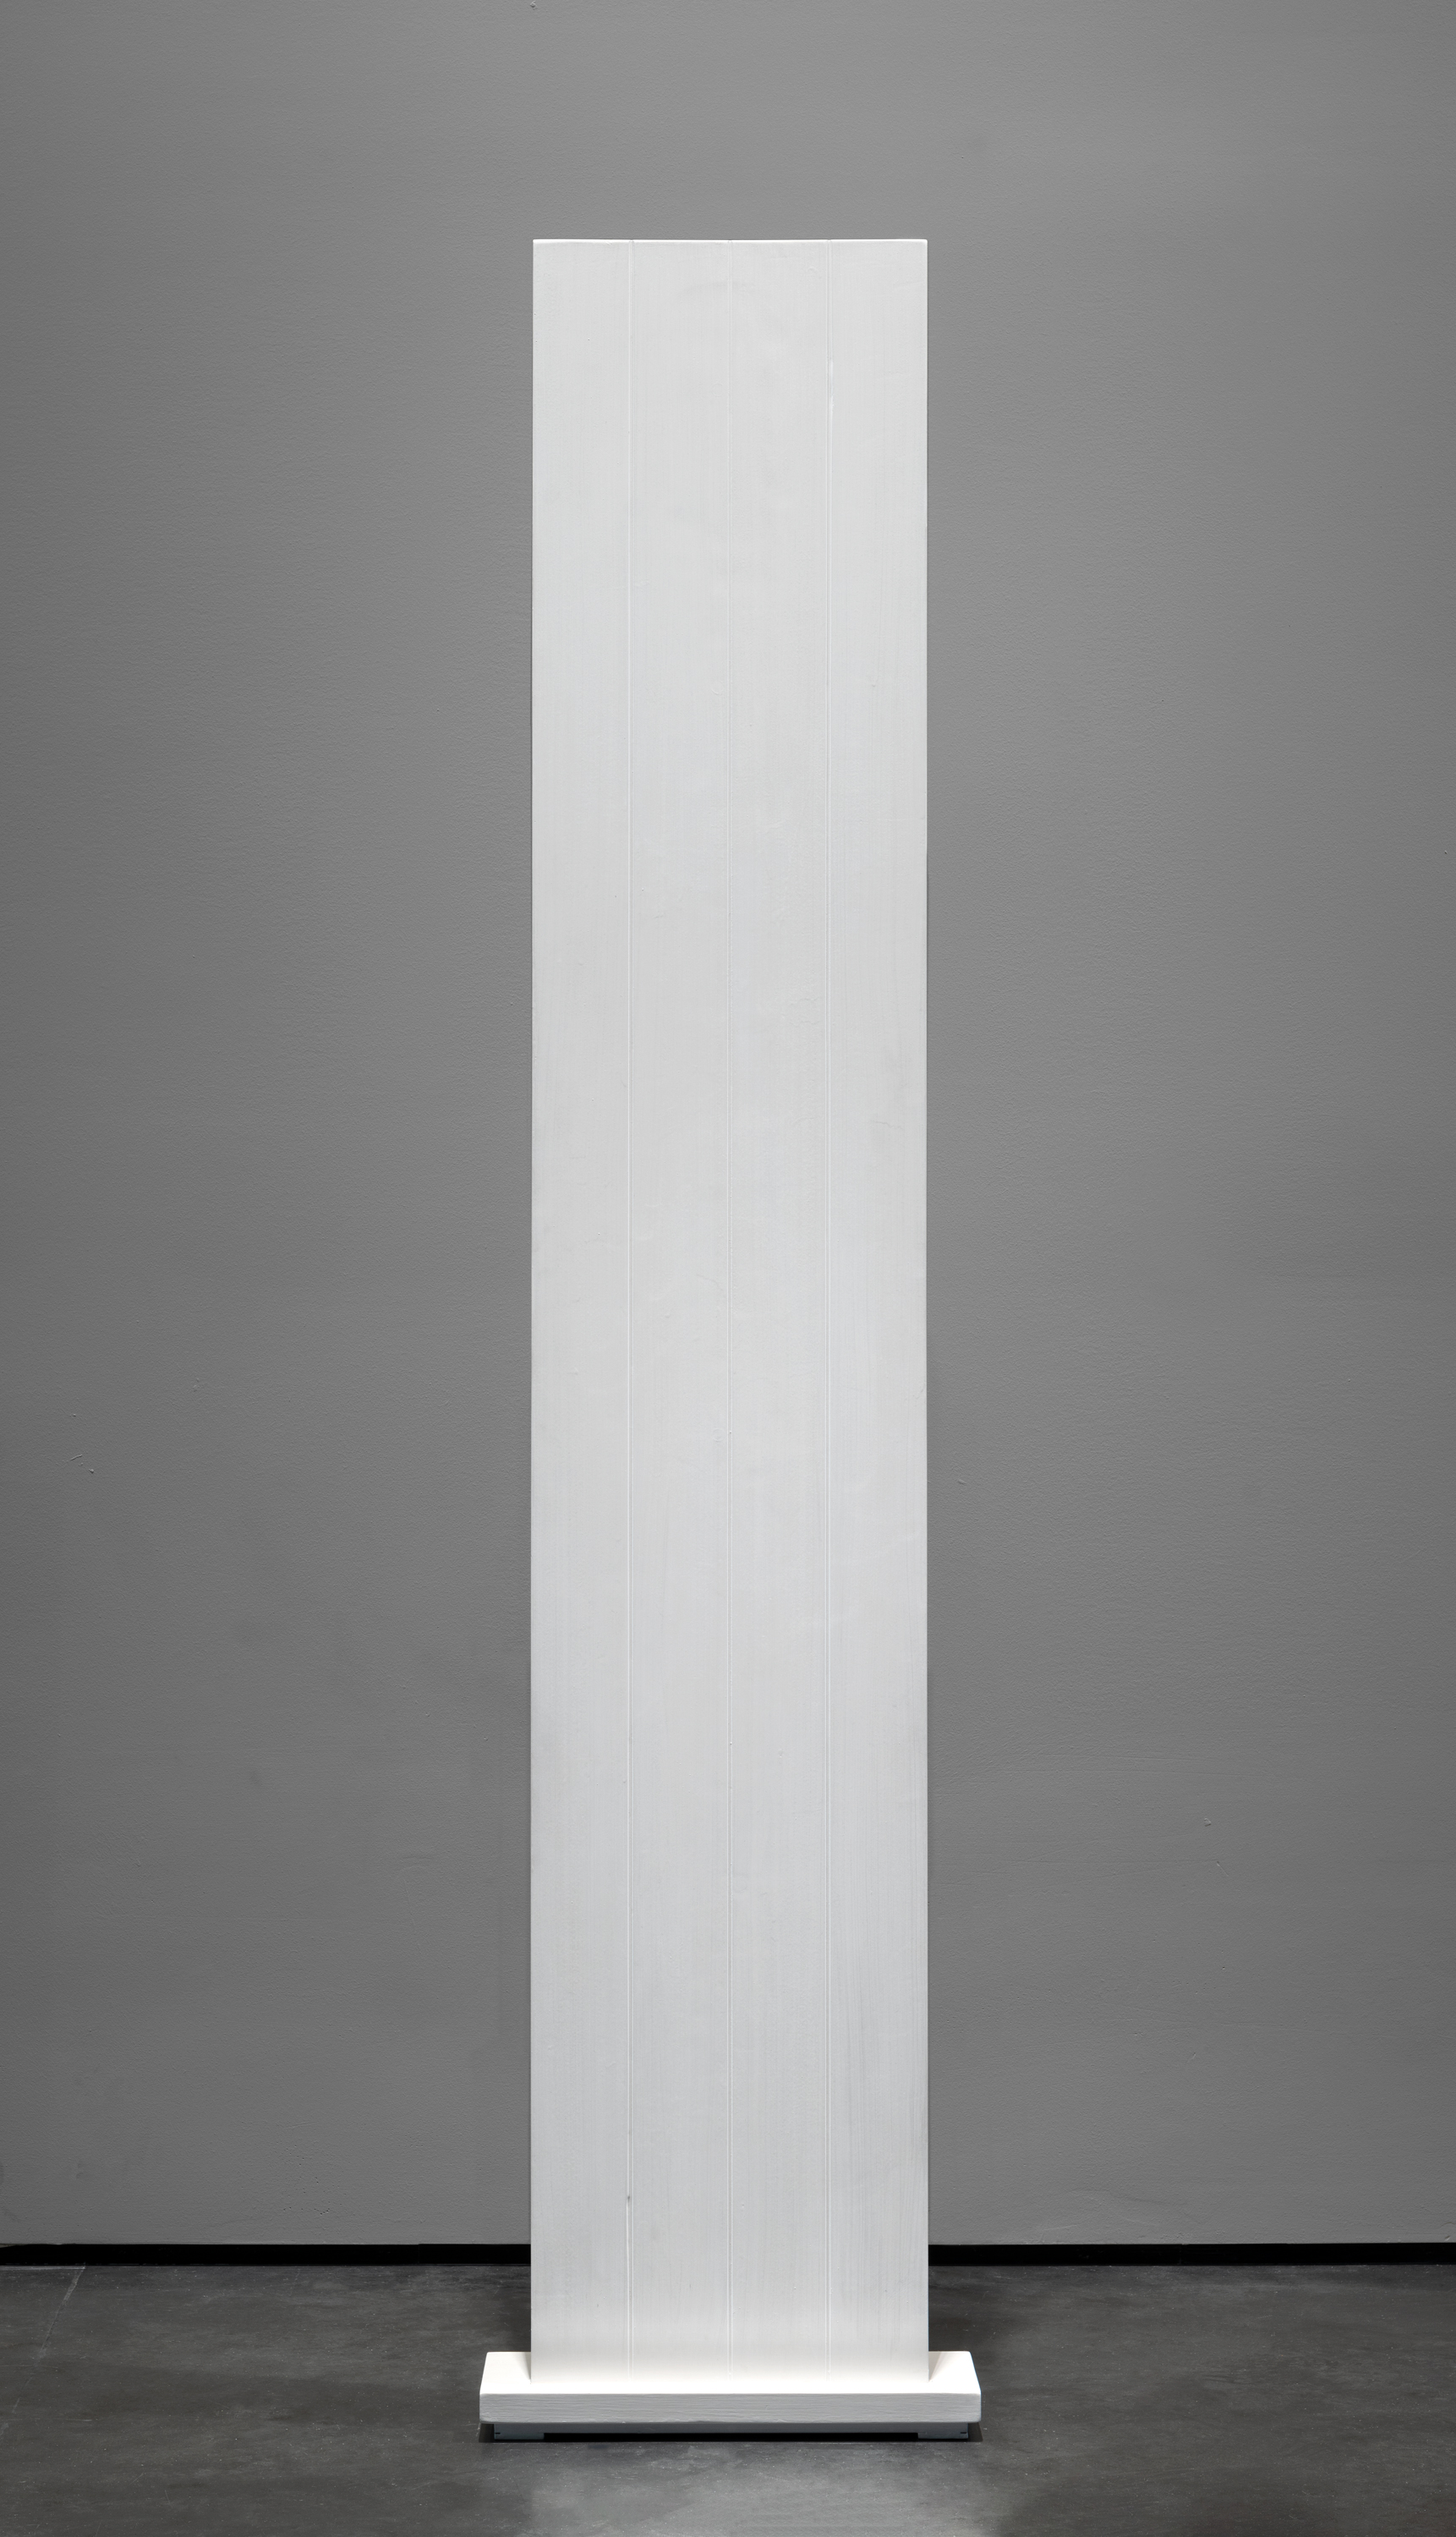 Anne Truitt, White: Four, 1962, gift of the 2019 Collectors Committee, © annetruitt.org/Bridgeman, photo © Museum Associates/LACMA